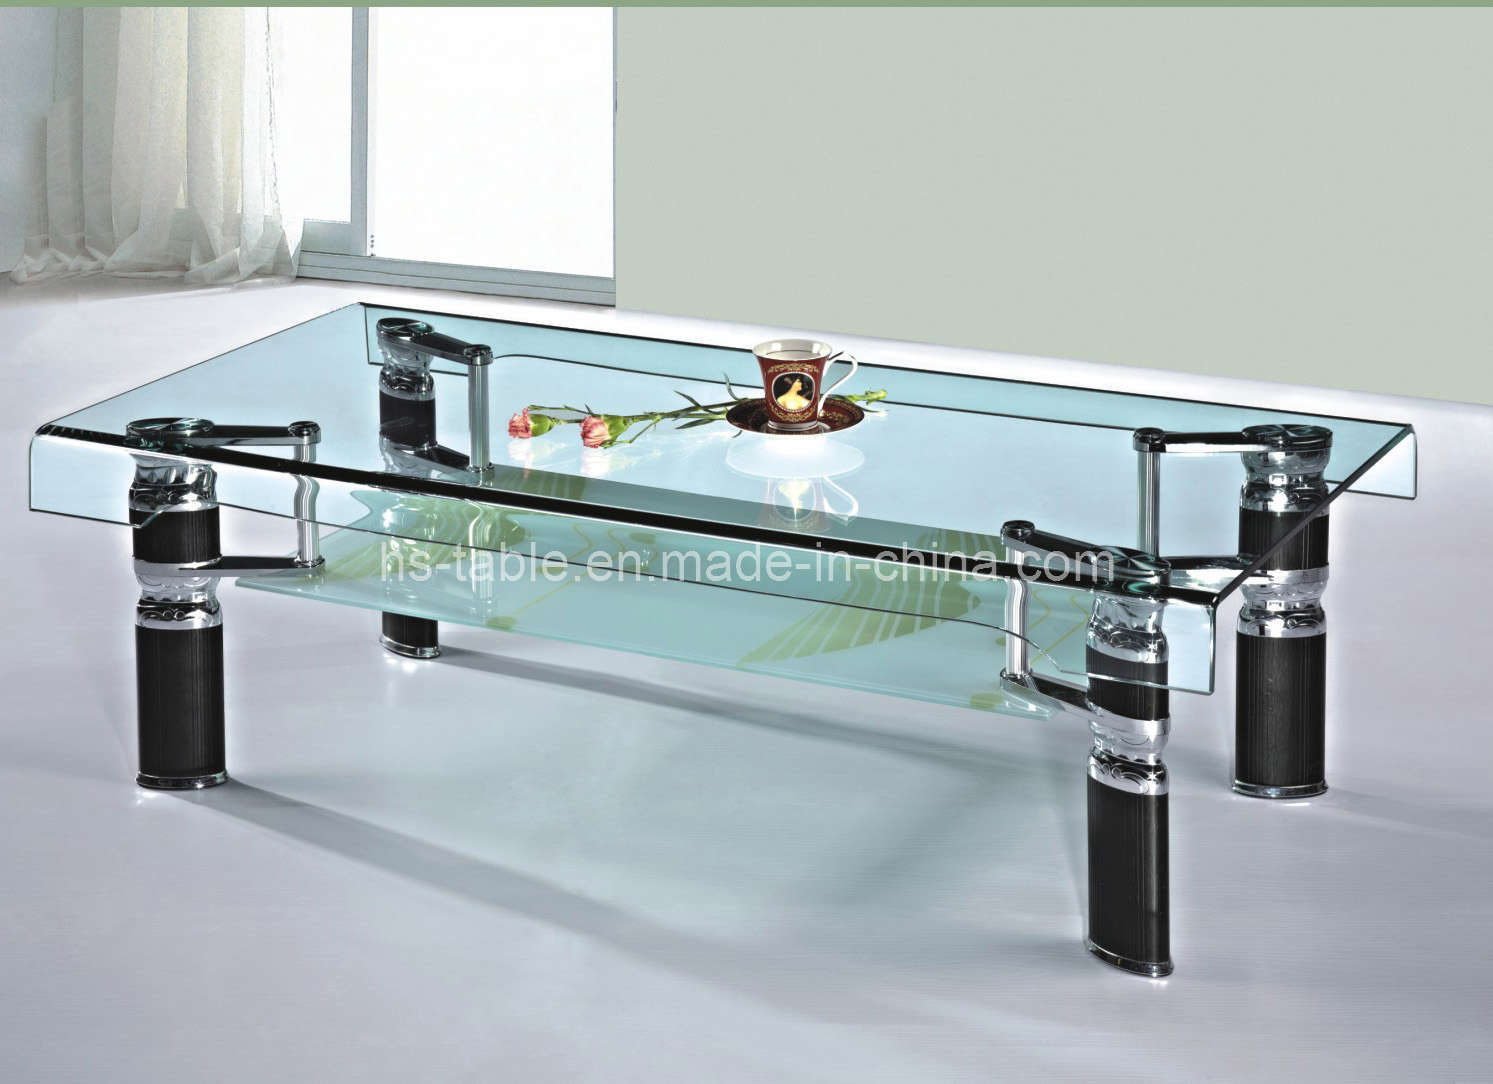 China bended glass coffee table living room furniture for Glass living room furniture